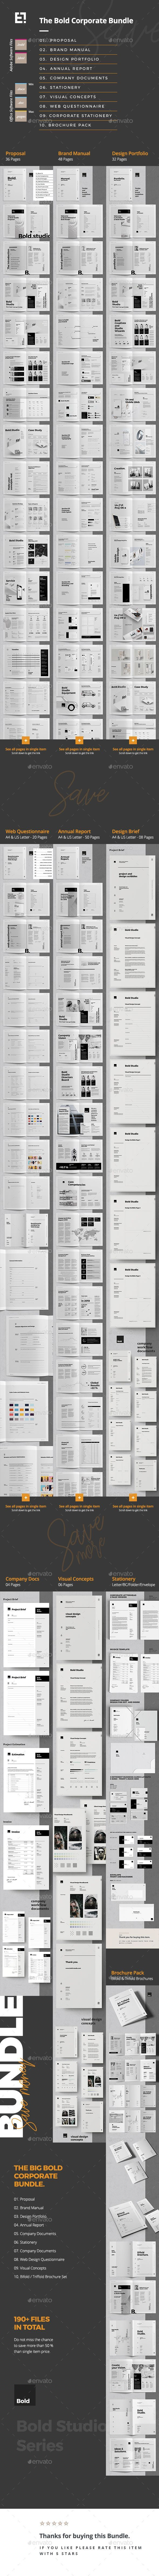 Company Bundle — InDesign INDD #minimal #trend • Available here ➝ https://graphicriver.net/item/company-bundle/20681335?ref=pxcr